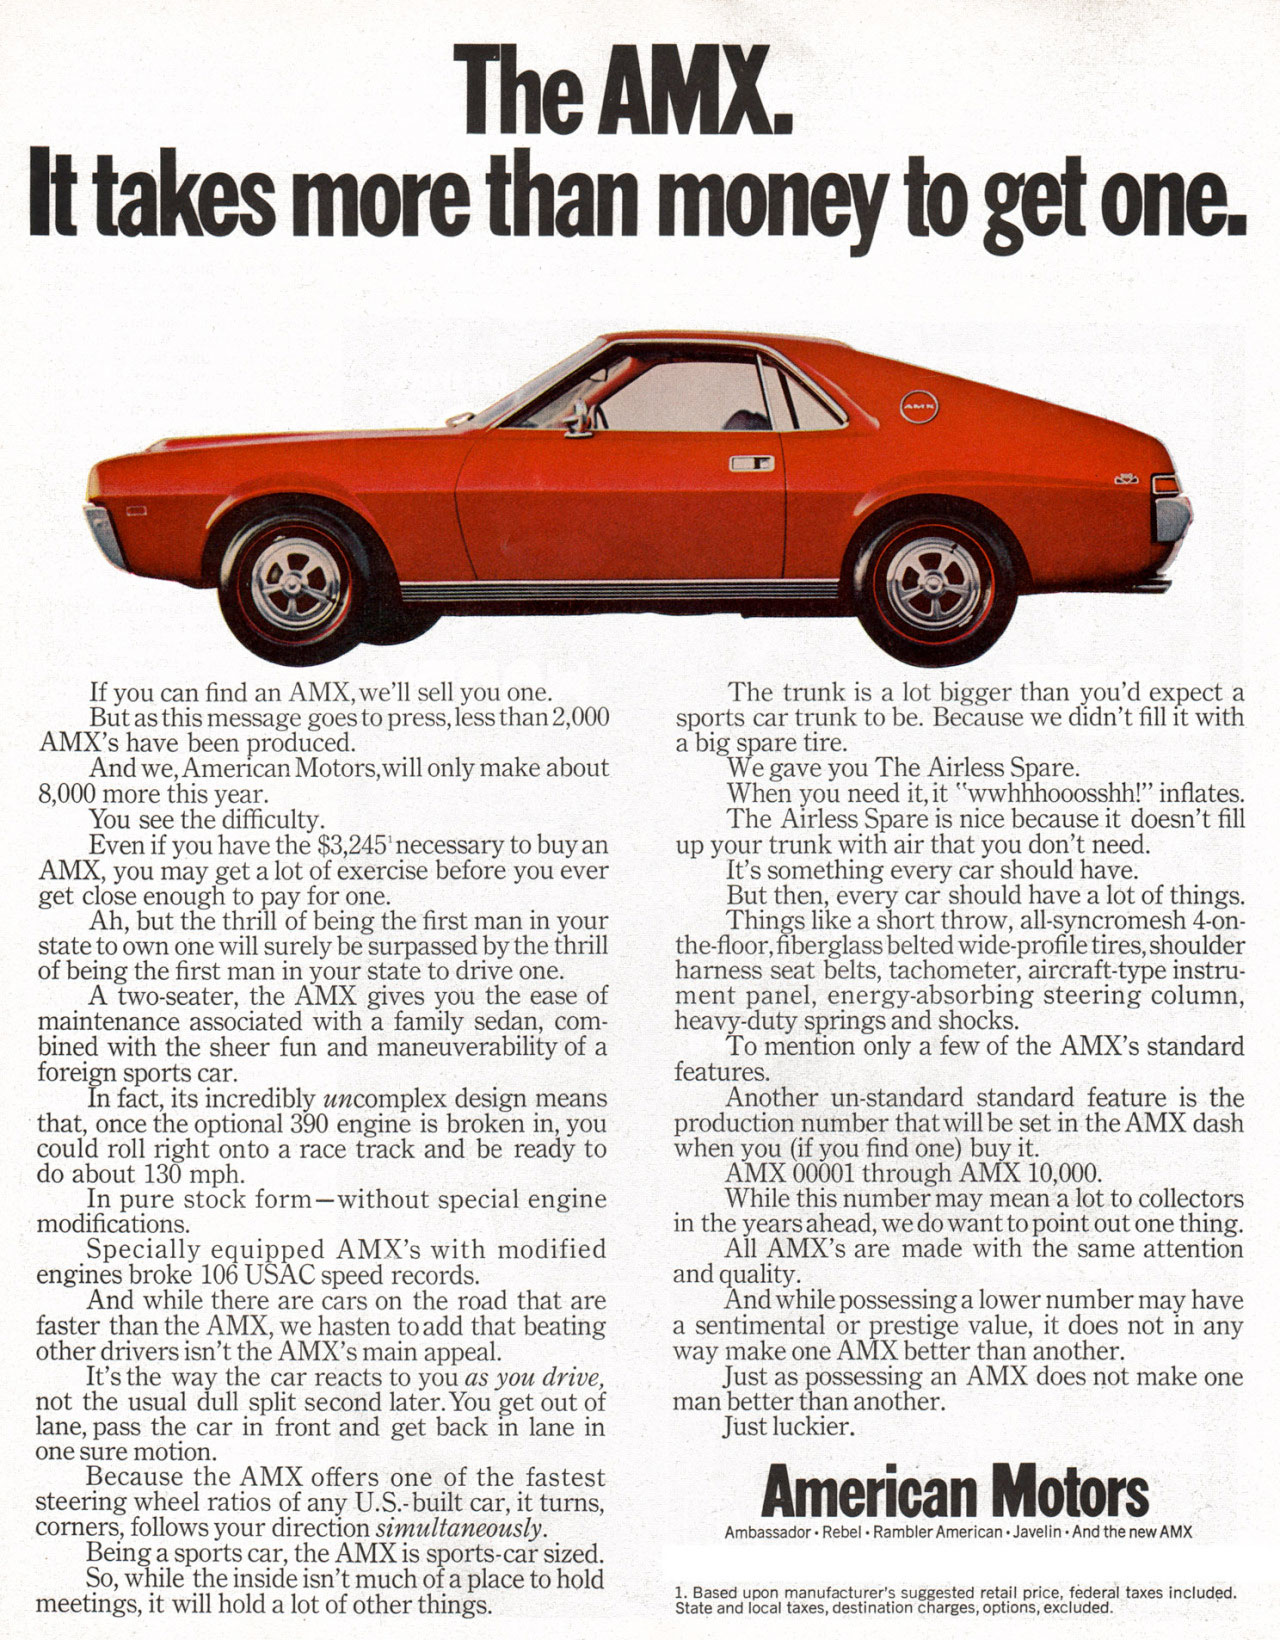 The American Motors AMX. It takes more than money to get one. If you can find an AMX, we'll sell you one. But as this message goes to press, less than 2,000 AMX's have been produced. And we, Amencan Motors,will only make about 8,000 more this year. You see the difficulty. Even if you have the $3,245' necessary to buy an AMX, you may get a lot of exercise before you ever get close enough to pay for one. Ah, but the thrill of being the first man in your state to own one will surely be surpassed by the thrill of being the first man in your state to drive one. A two-seater, the AMX gives you the ease of maintenance associated with a family sedan, com-bined with the sheer fun and maneuverability of a foreign sports car. In fact, its incredibly uncomplex design means that, once the optional 390 engine is broken in, you could roll right onto a race track and be ready to do about 130 mph. In pure stock form—without special engine modifications. Specially equipped AMX's with modified engines broke 106 USAC speed records. And while there are cars on the road that are faster than the AMX, we hasten to add that beating other drivers isn't the AMX's main appeal. It's the way the car reacts to you as you drive, not the usual dull split second later.You get out of lane, pass the car in front and get back in lane in one sure motion. Because the AMX offers one of the fastest steering wheel ratios of any U.S.-built car, it turns, corners, follows your direction simultaneously. Being a sports car, the AMX is sports-car sized. So, while the inside isn't much of a place to hold meetings, it will hold a lot of other things.  The trunk is a lot bigger than you'd expect a sports car trunk to be. Because we didn't fill it with a big spare tire. We gave you The Airless Spare. When you need it, it ''wwhhh000sshh!'' inflates. The Airless Spare is nice because it doesn't fill up your trunk with air that you don't need. It's something every car should have. But then, every car should have a lot 